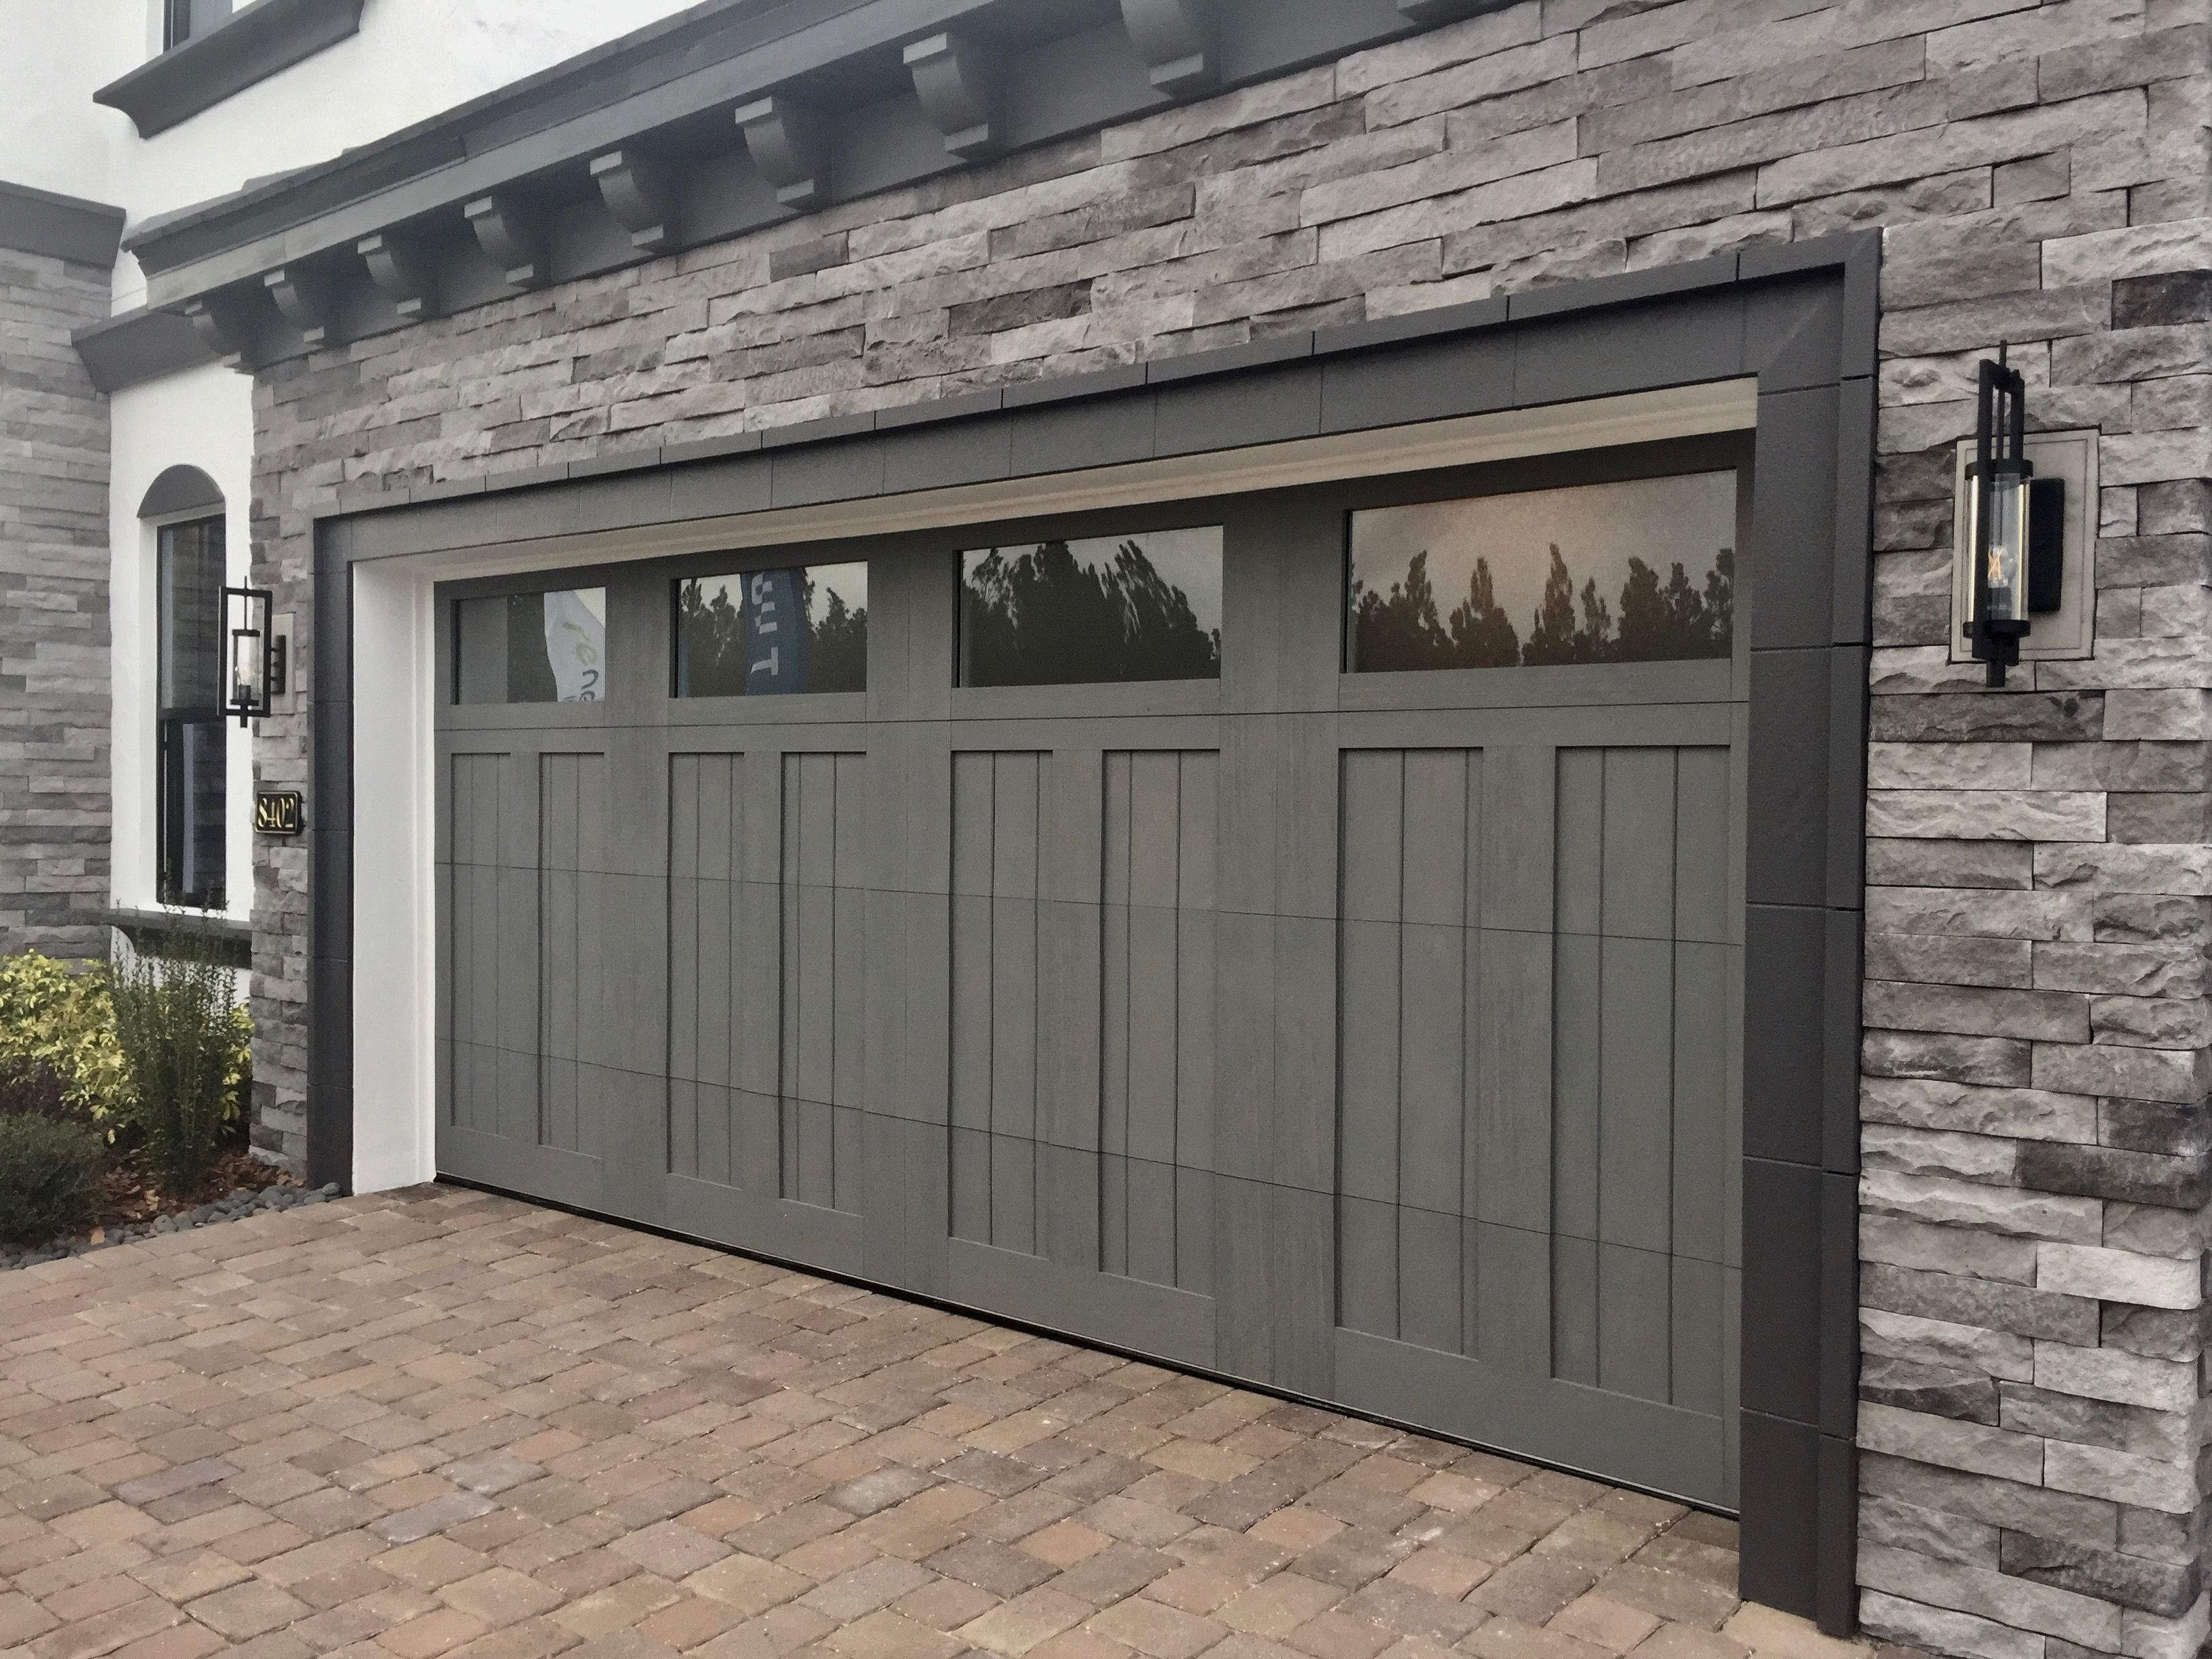 Gray Garage Door Clopay Canyon Ridge Collection Faux Wood Carriage House Design 12 With Opaque Long Windows Custom Painted To Match